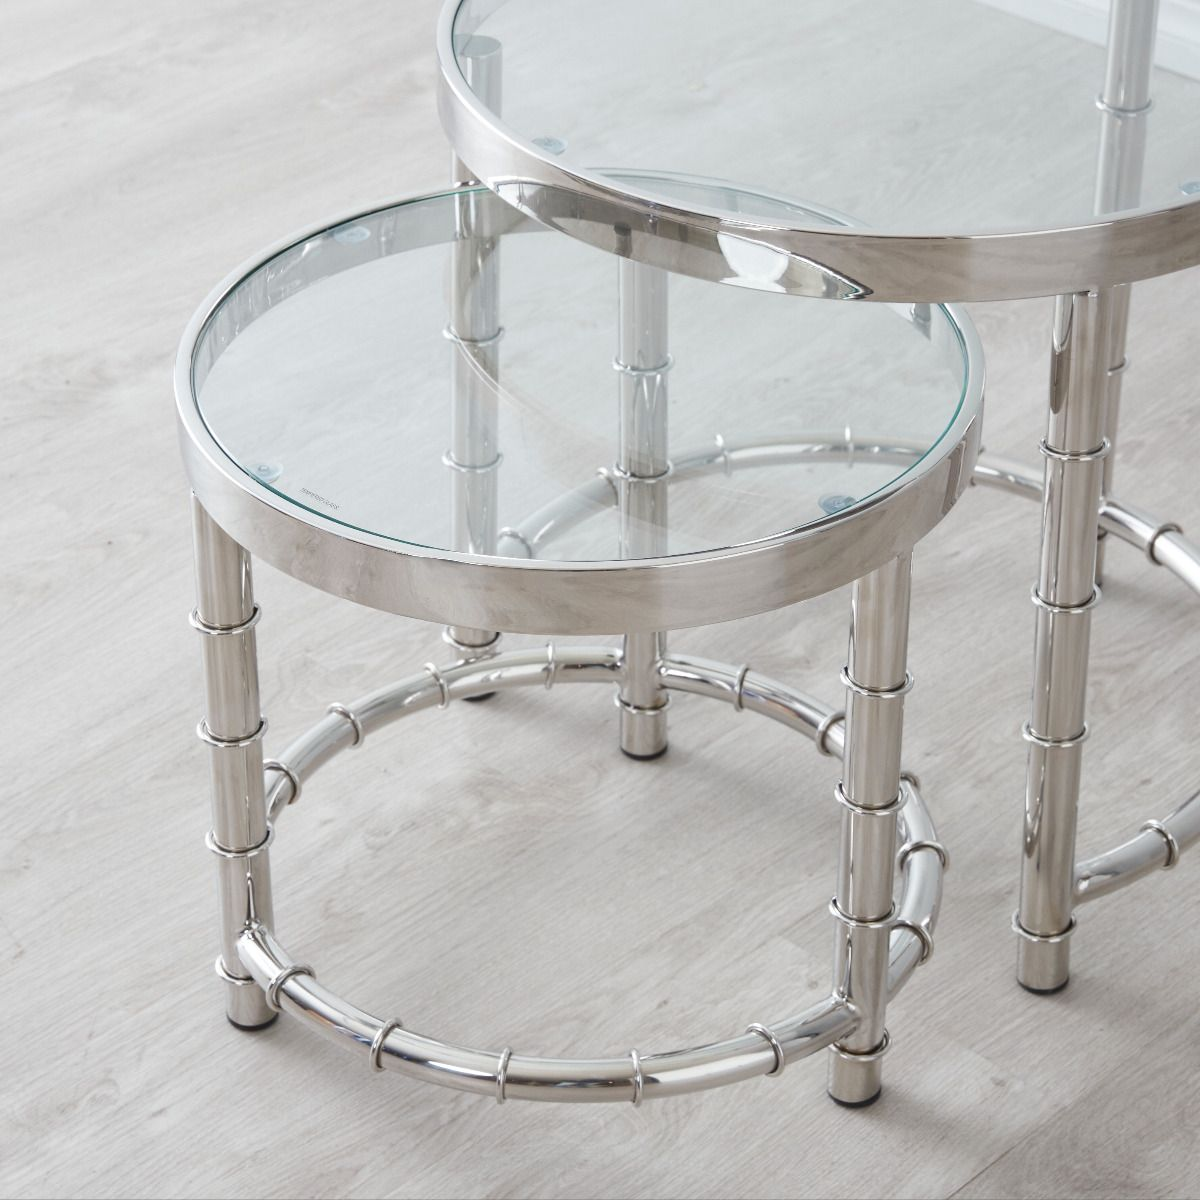 Balmoral Round nested side tables II